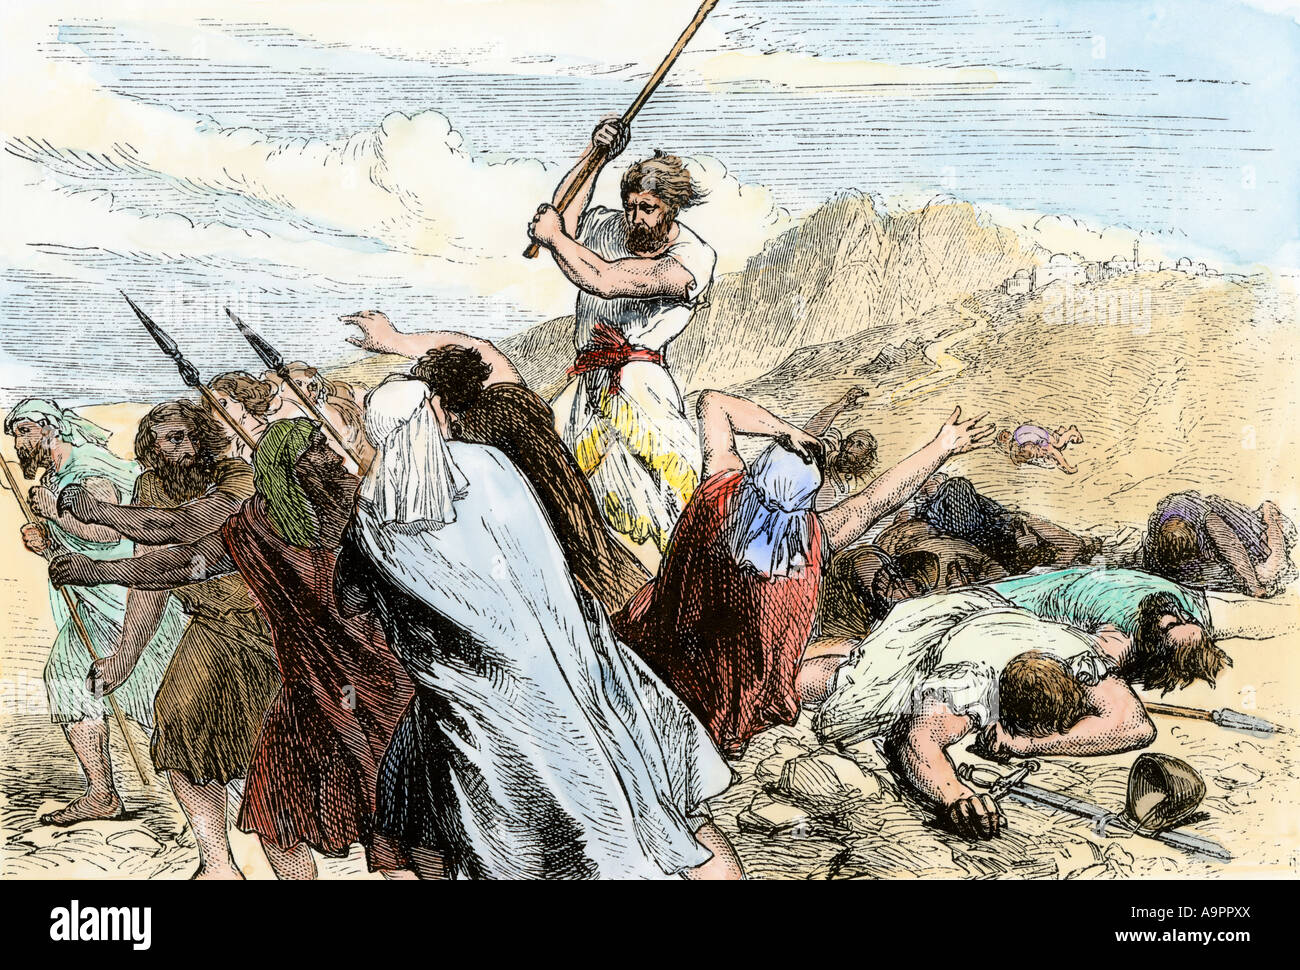 Hebrew warriors slaying Philistines in capturing the ancient city of Jericho circa 1400 BC. Hand-colored woodcut Stock Photo